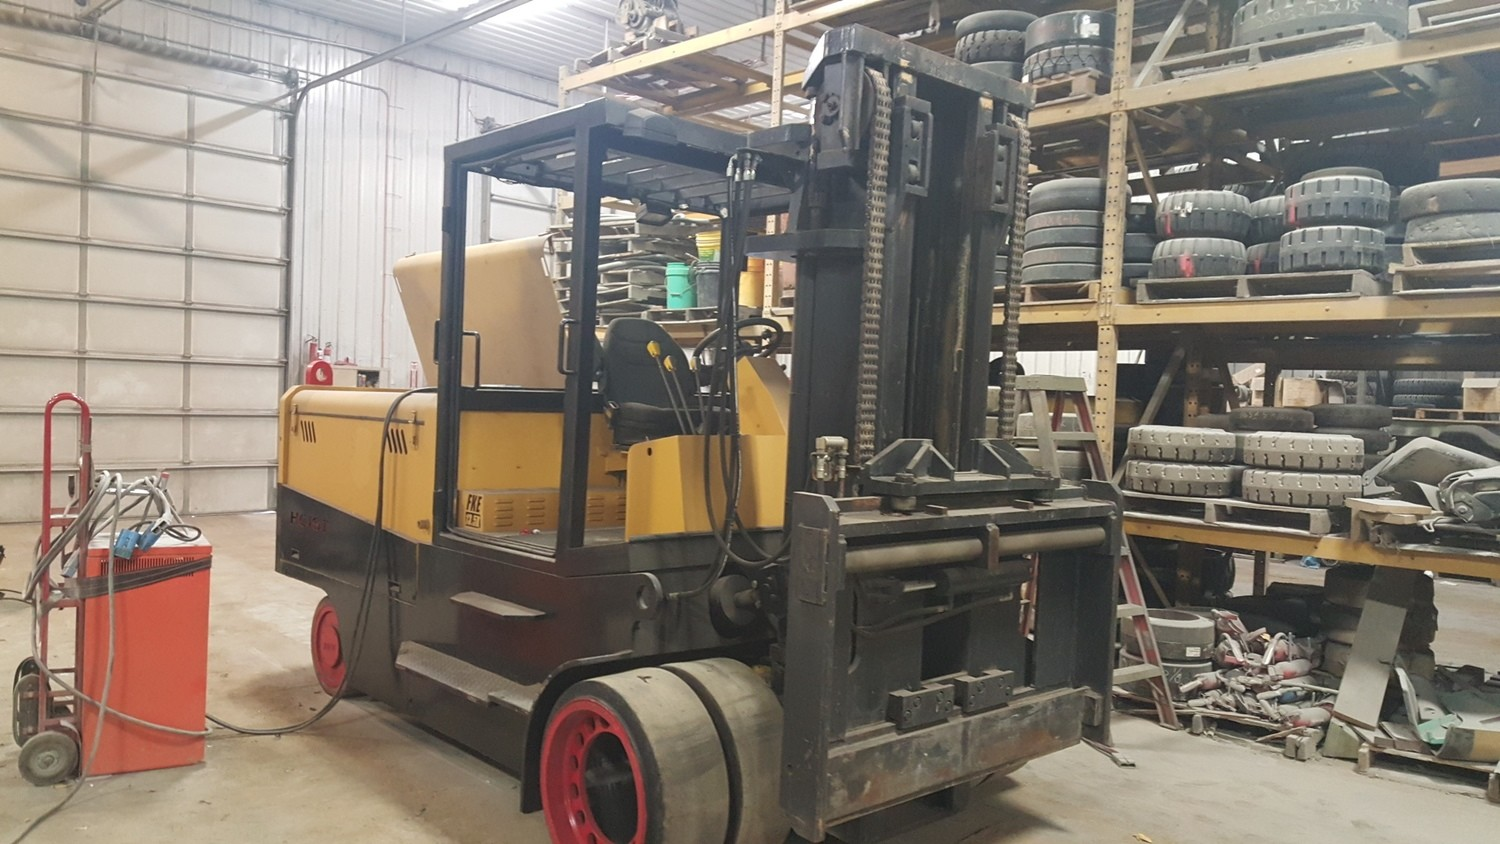 26,000lb Hoist Electric Forklift For Sale 13/15Ton